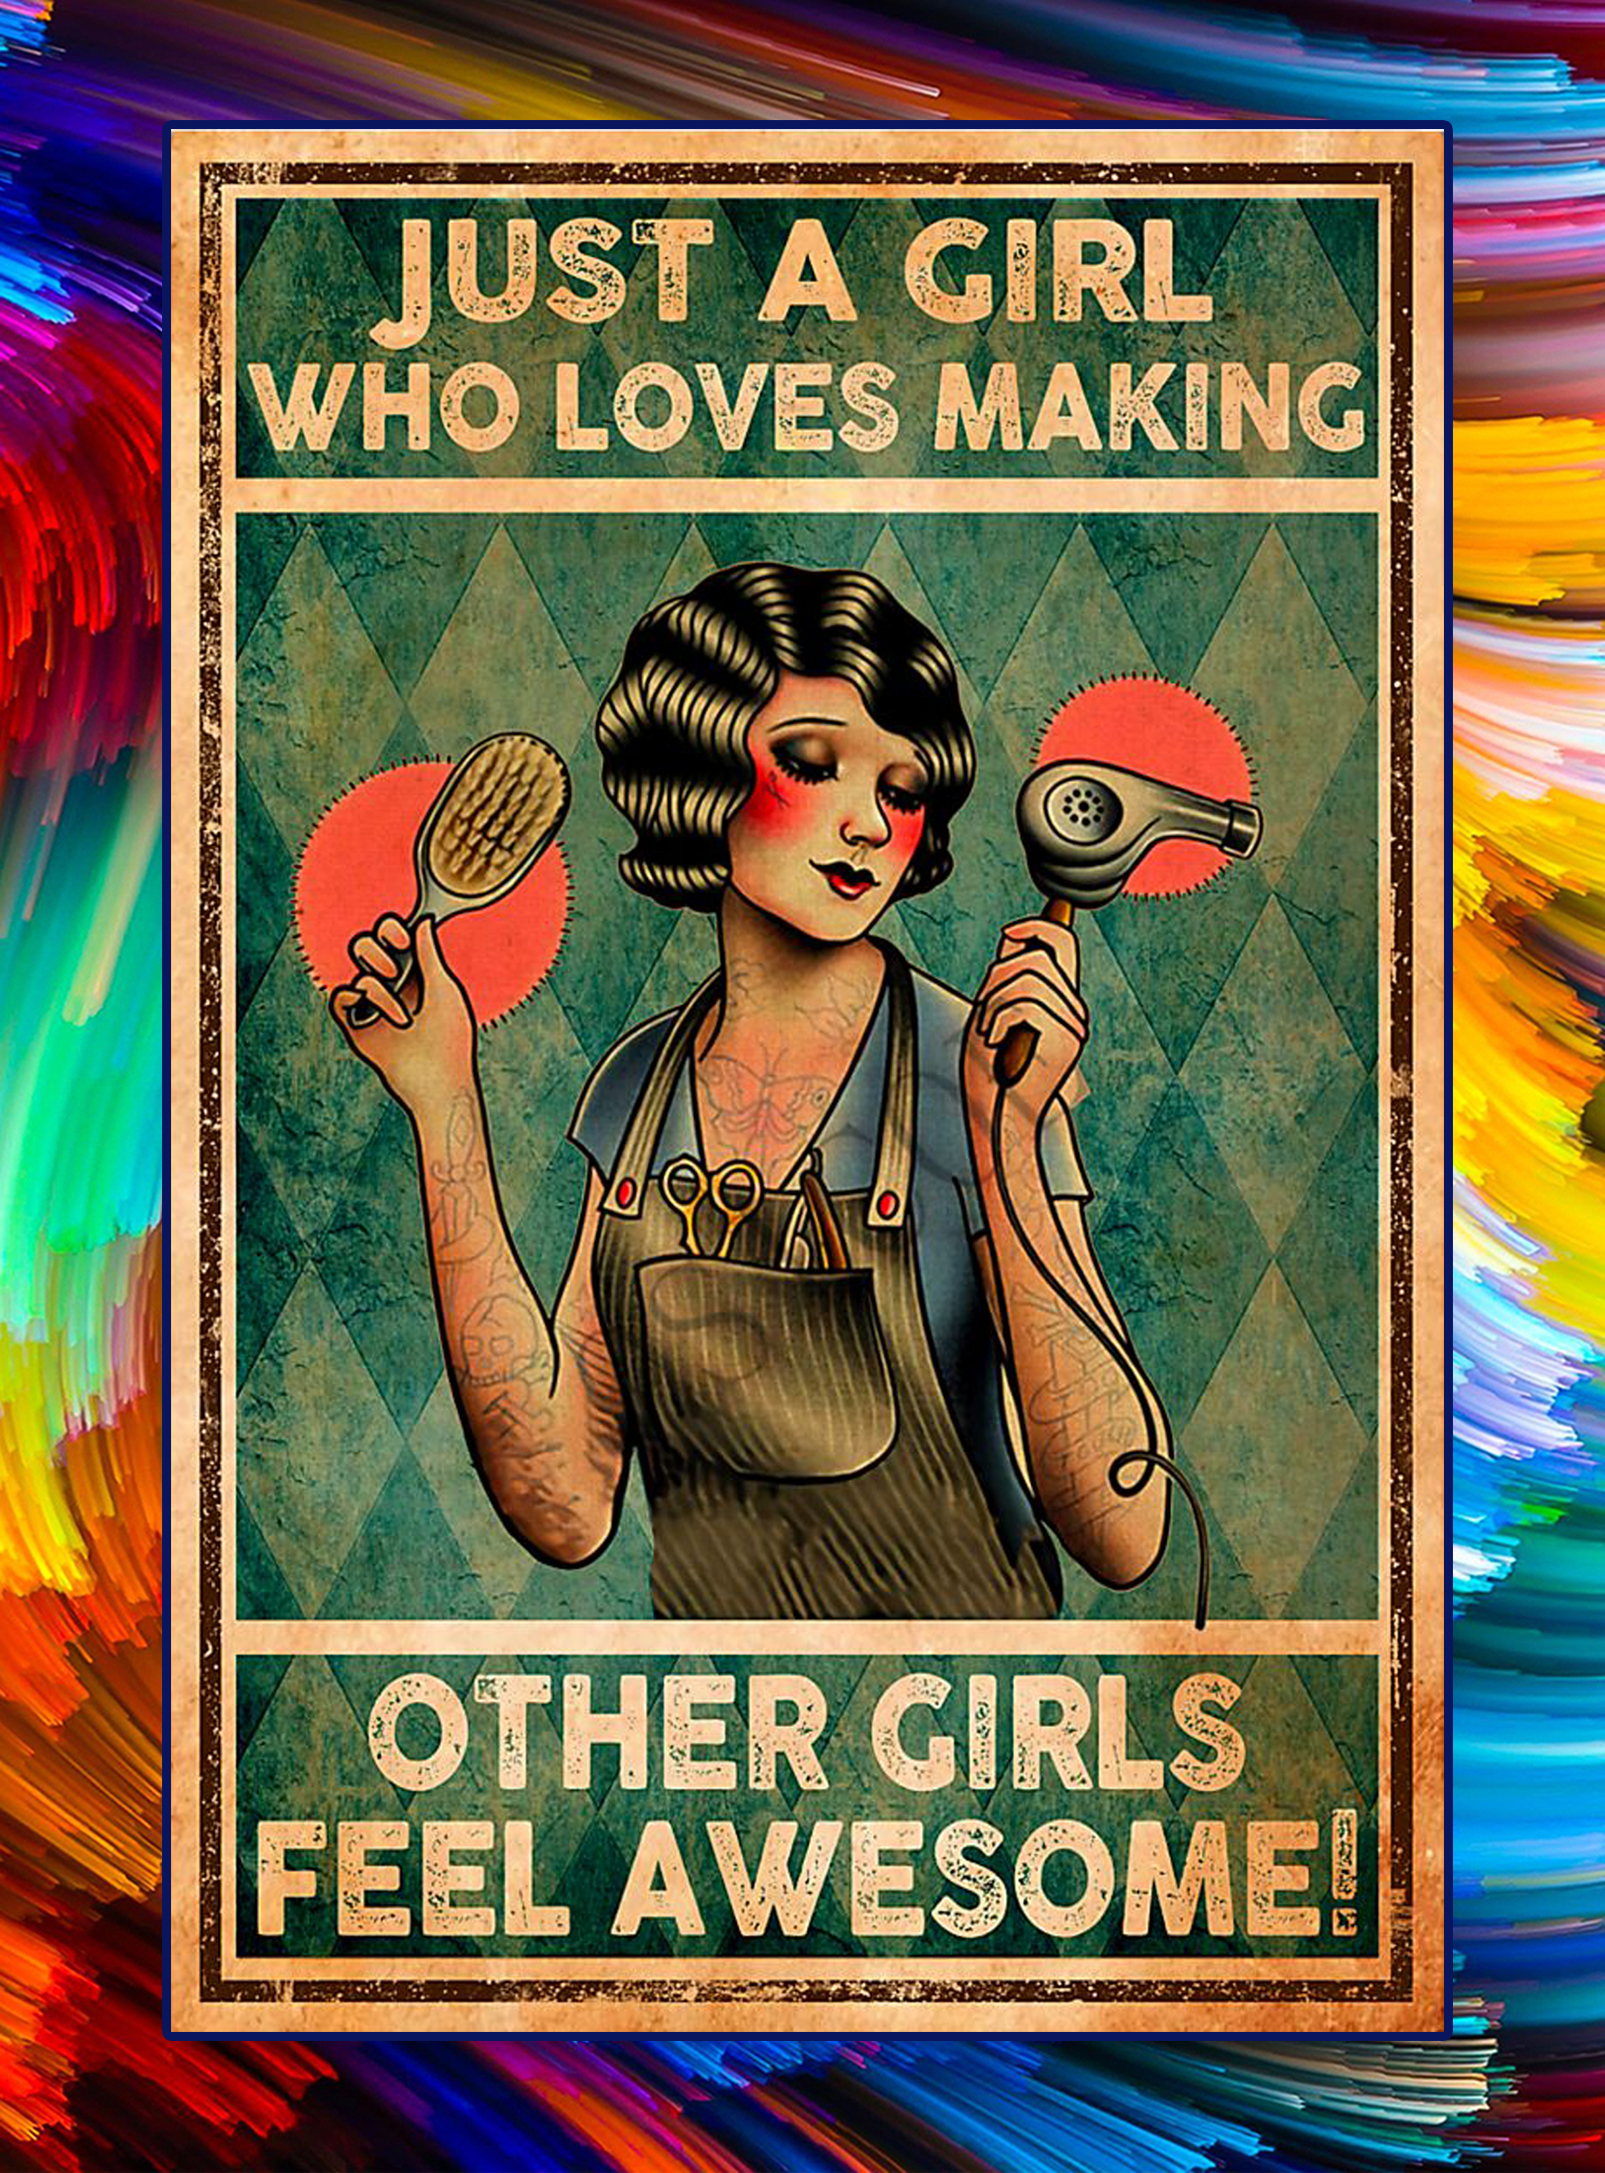 Just a girl who loves making other girls feel awesome poster - A3